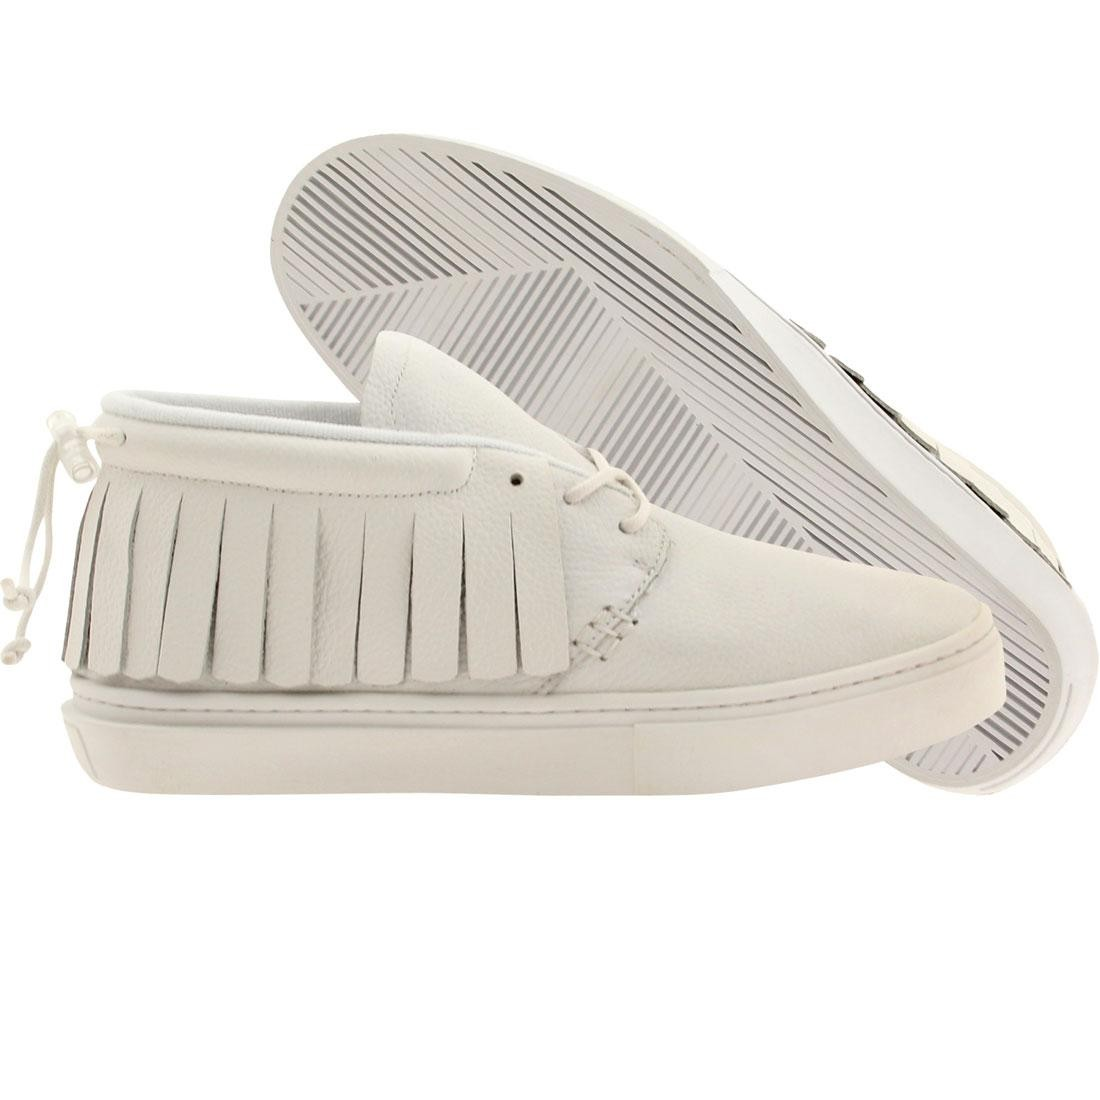 ミッド スニーカー メンズ 【 Clear Weather Men The One-o-one Mid Top (white / Tumbled Calfskin) 】 White / Tumbled Calfskin